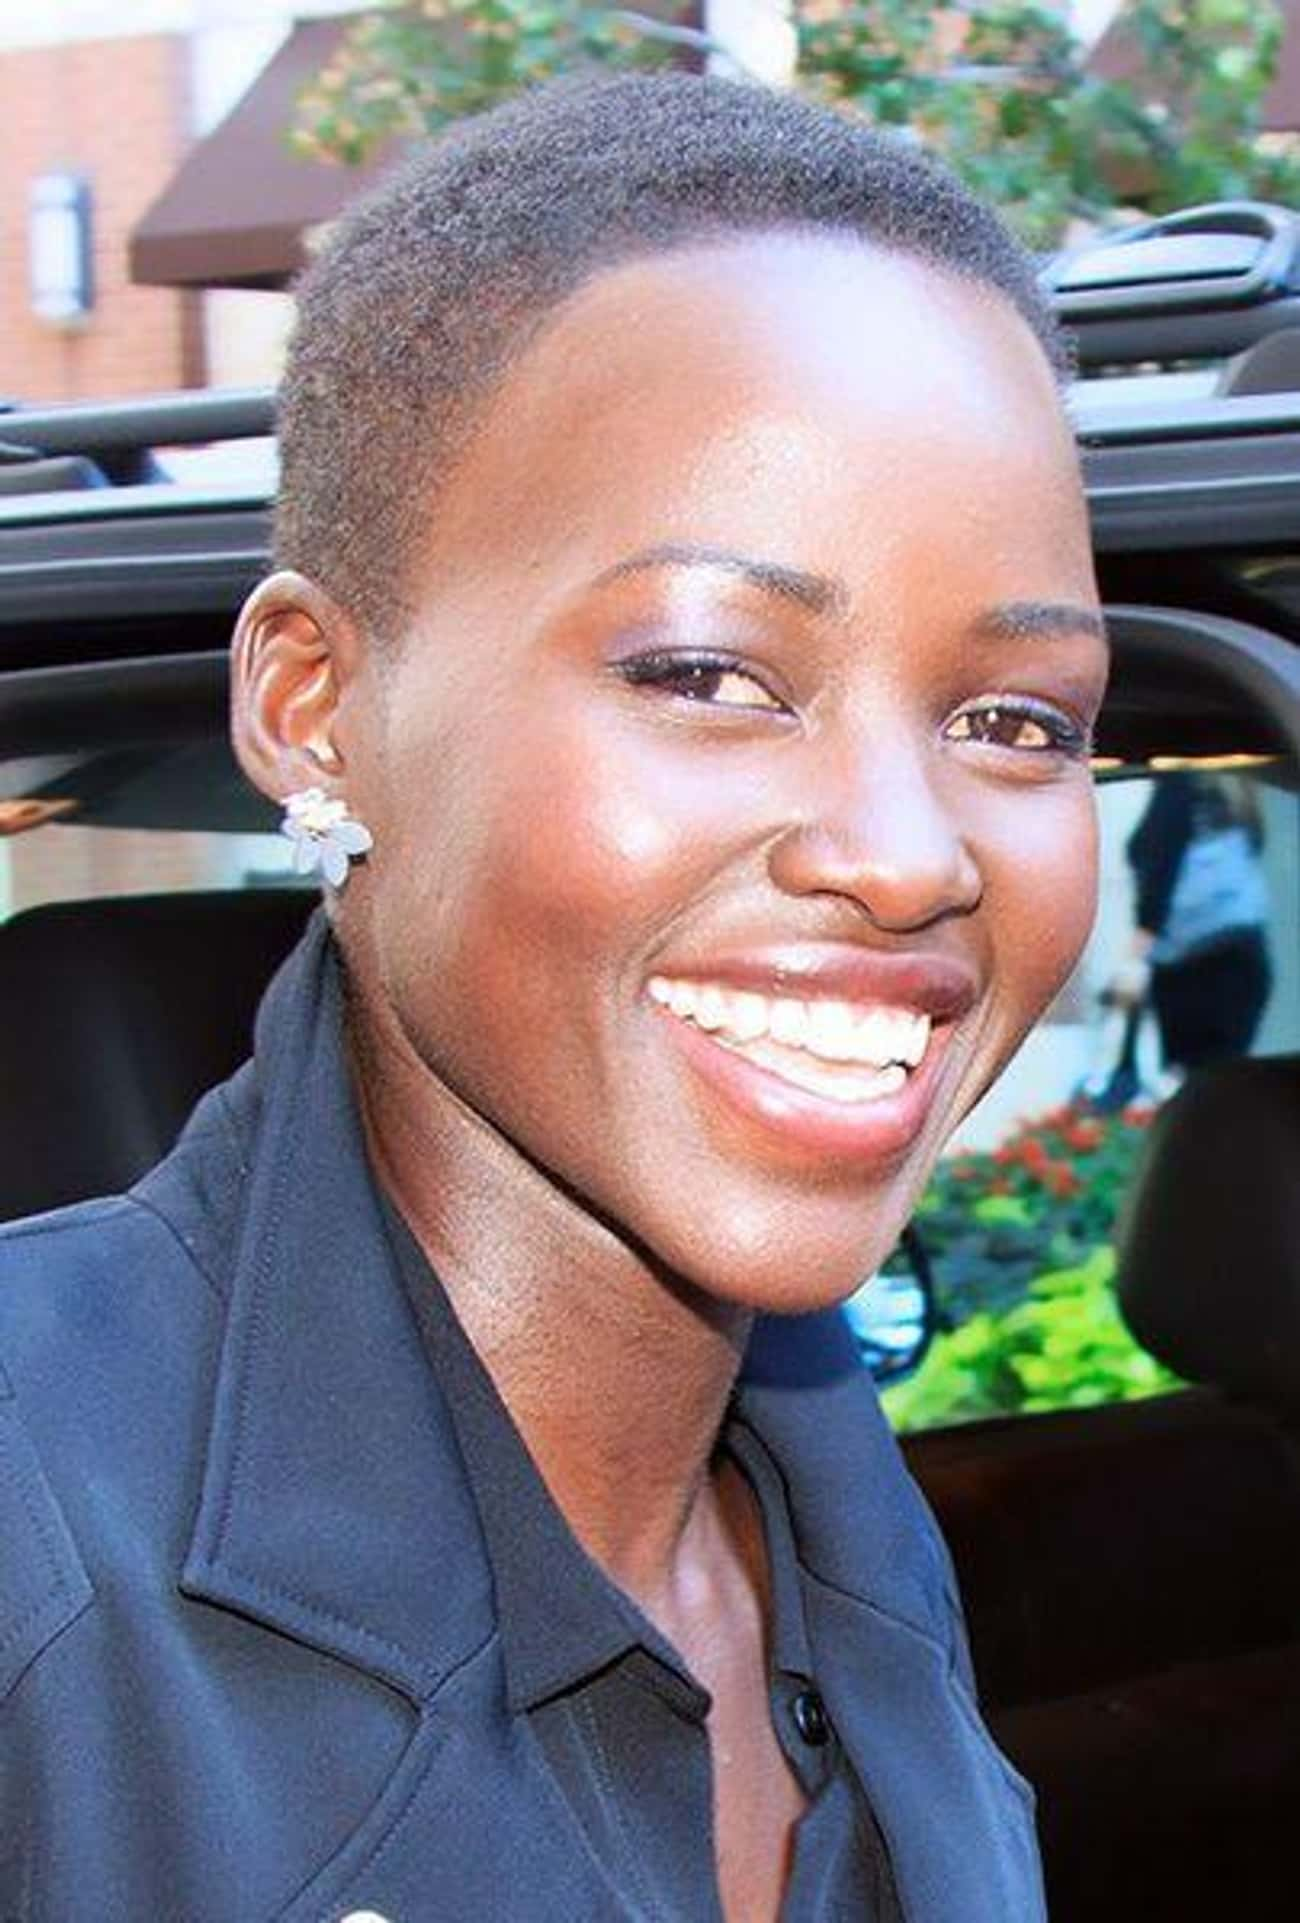 Lupita Nyong'o - Mexico Ci is listed (or ranked) 4 on the list Celebrities Who Weren't Born Where You Think